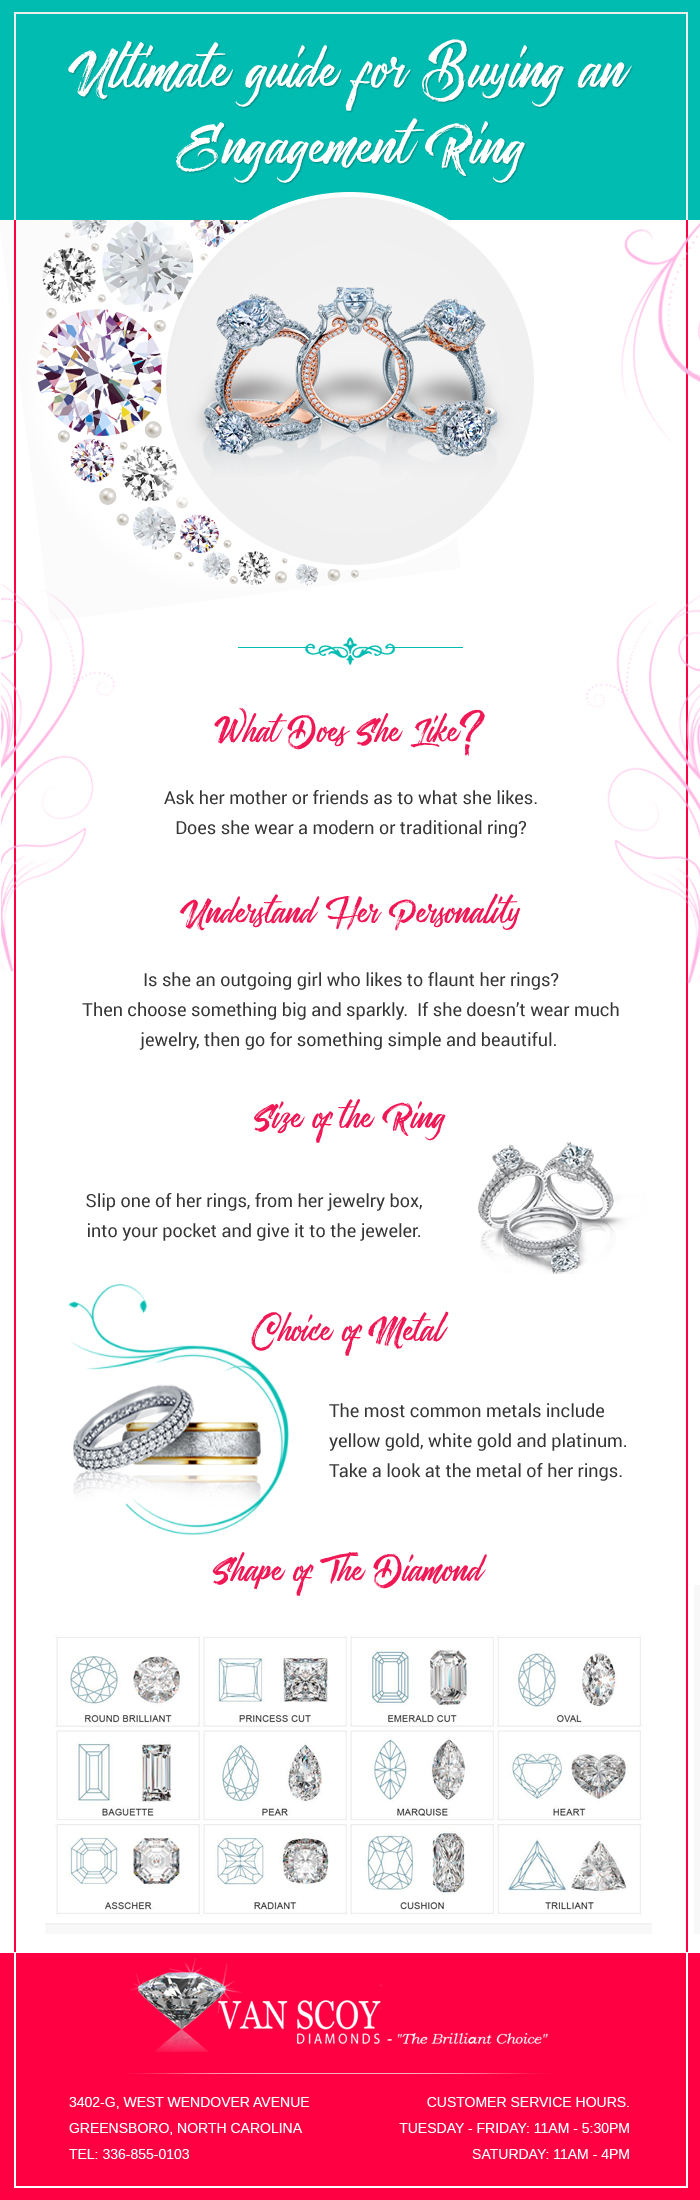 Ultimate Guide for Buying an Engagement Ring